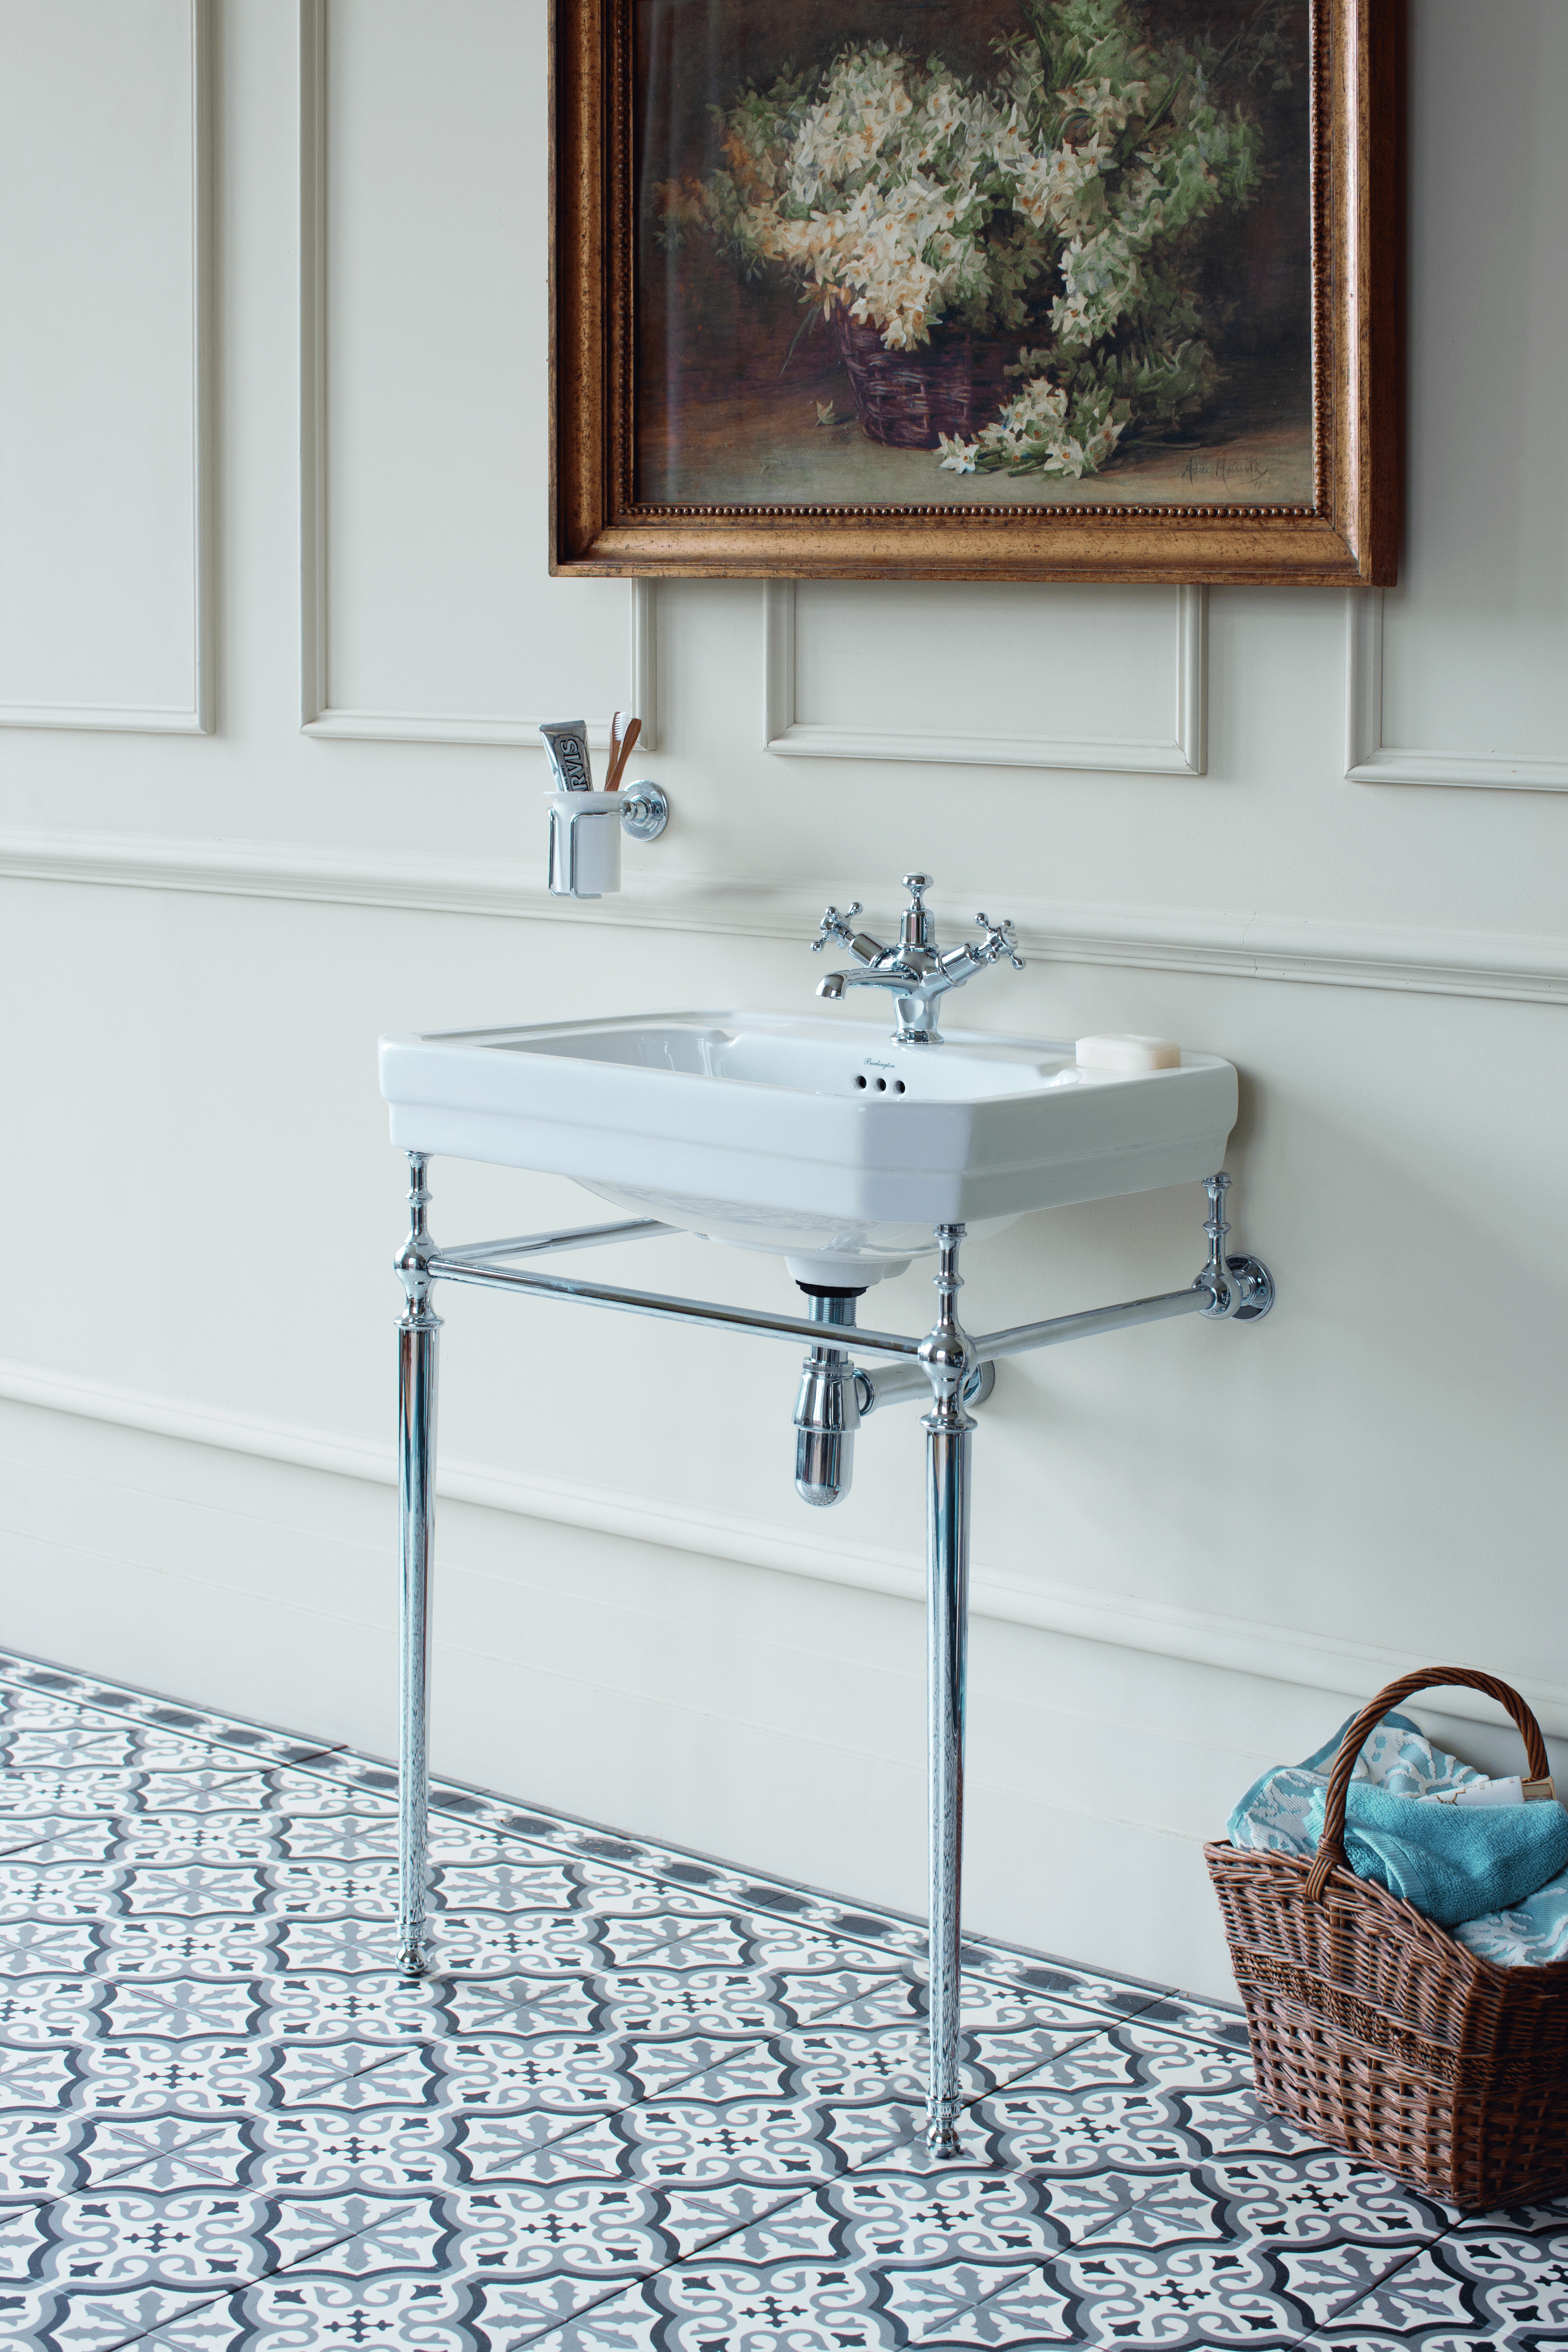 BathroomsByDesign - Blog - Why Traditional Bathrooms Can Be Trendy